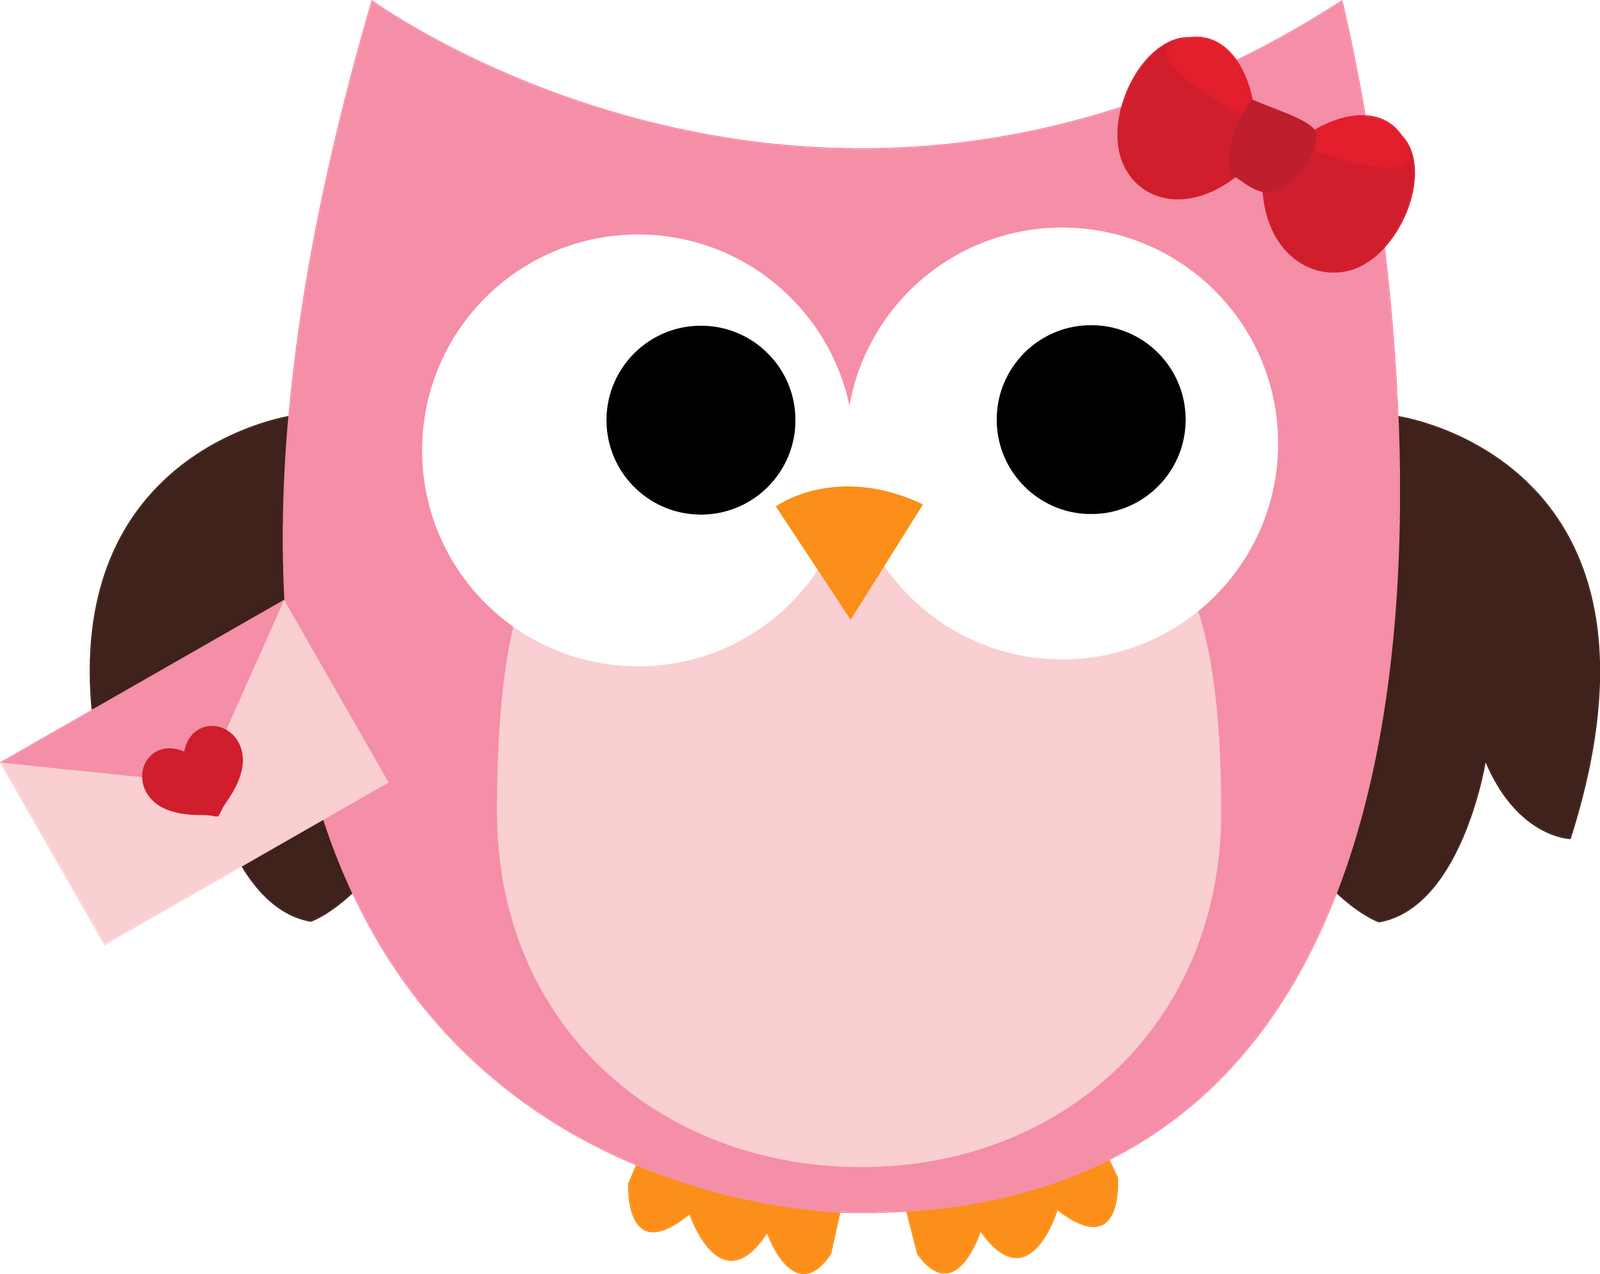 Owl Clip Cake Ideas and Designs - ClipArt Best - ClipArt Best | Owls ...